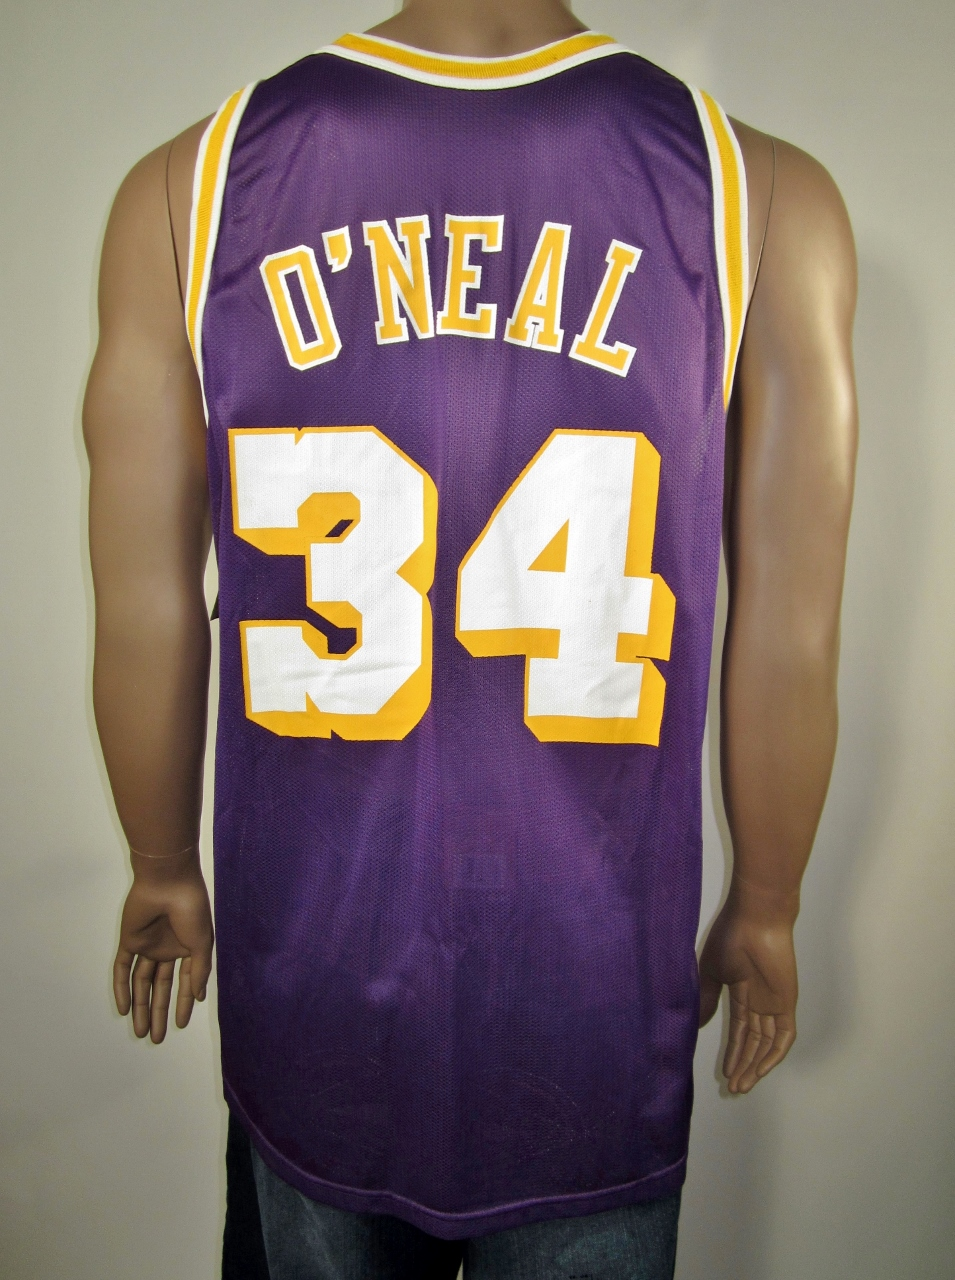 Shaquille O Neal Los Angeles Lakers Champion Jersey NWT on Storenvy 248080087